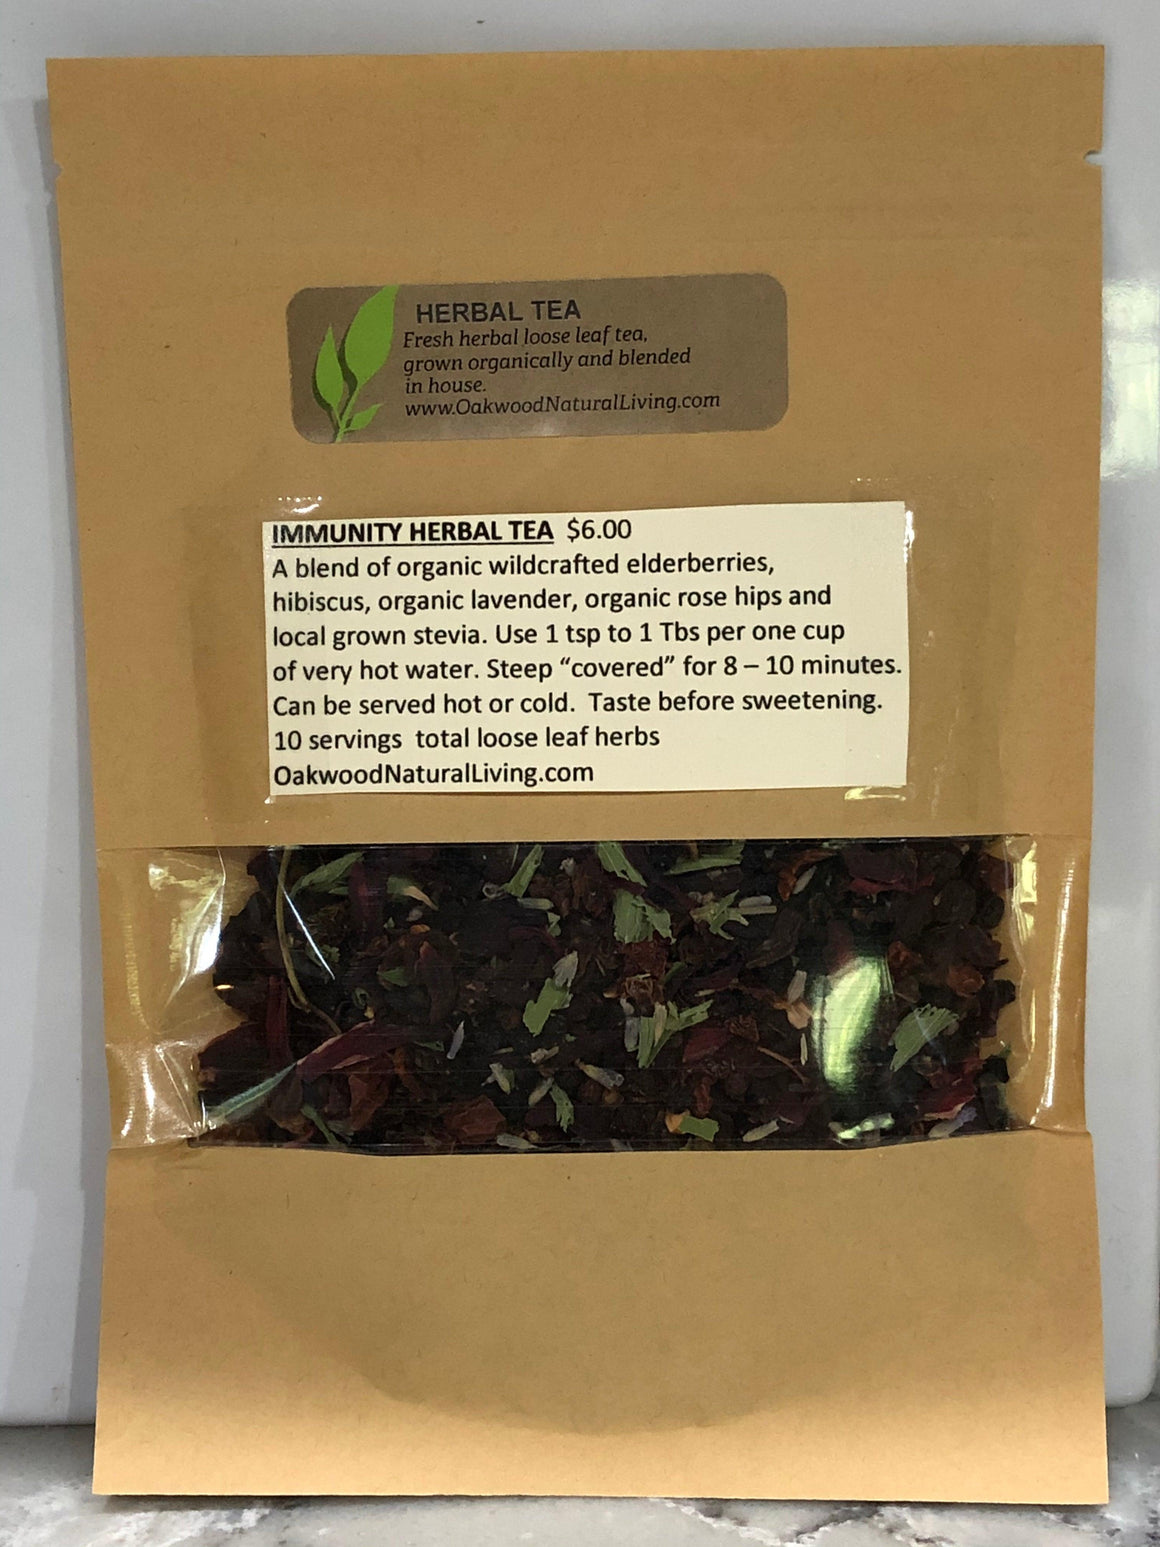 Herbal Tea - Immunity Blend